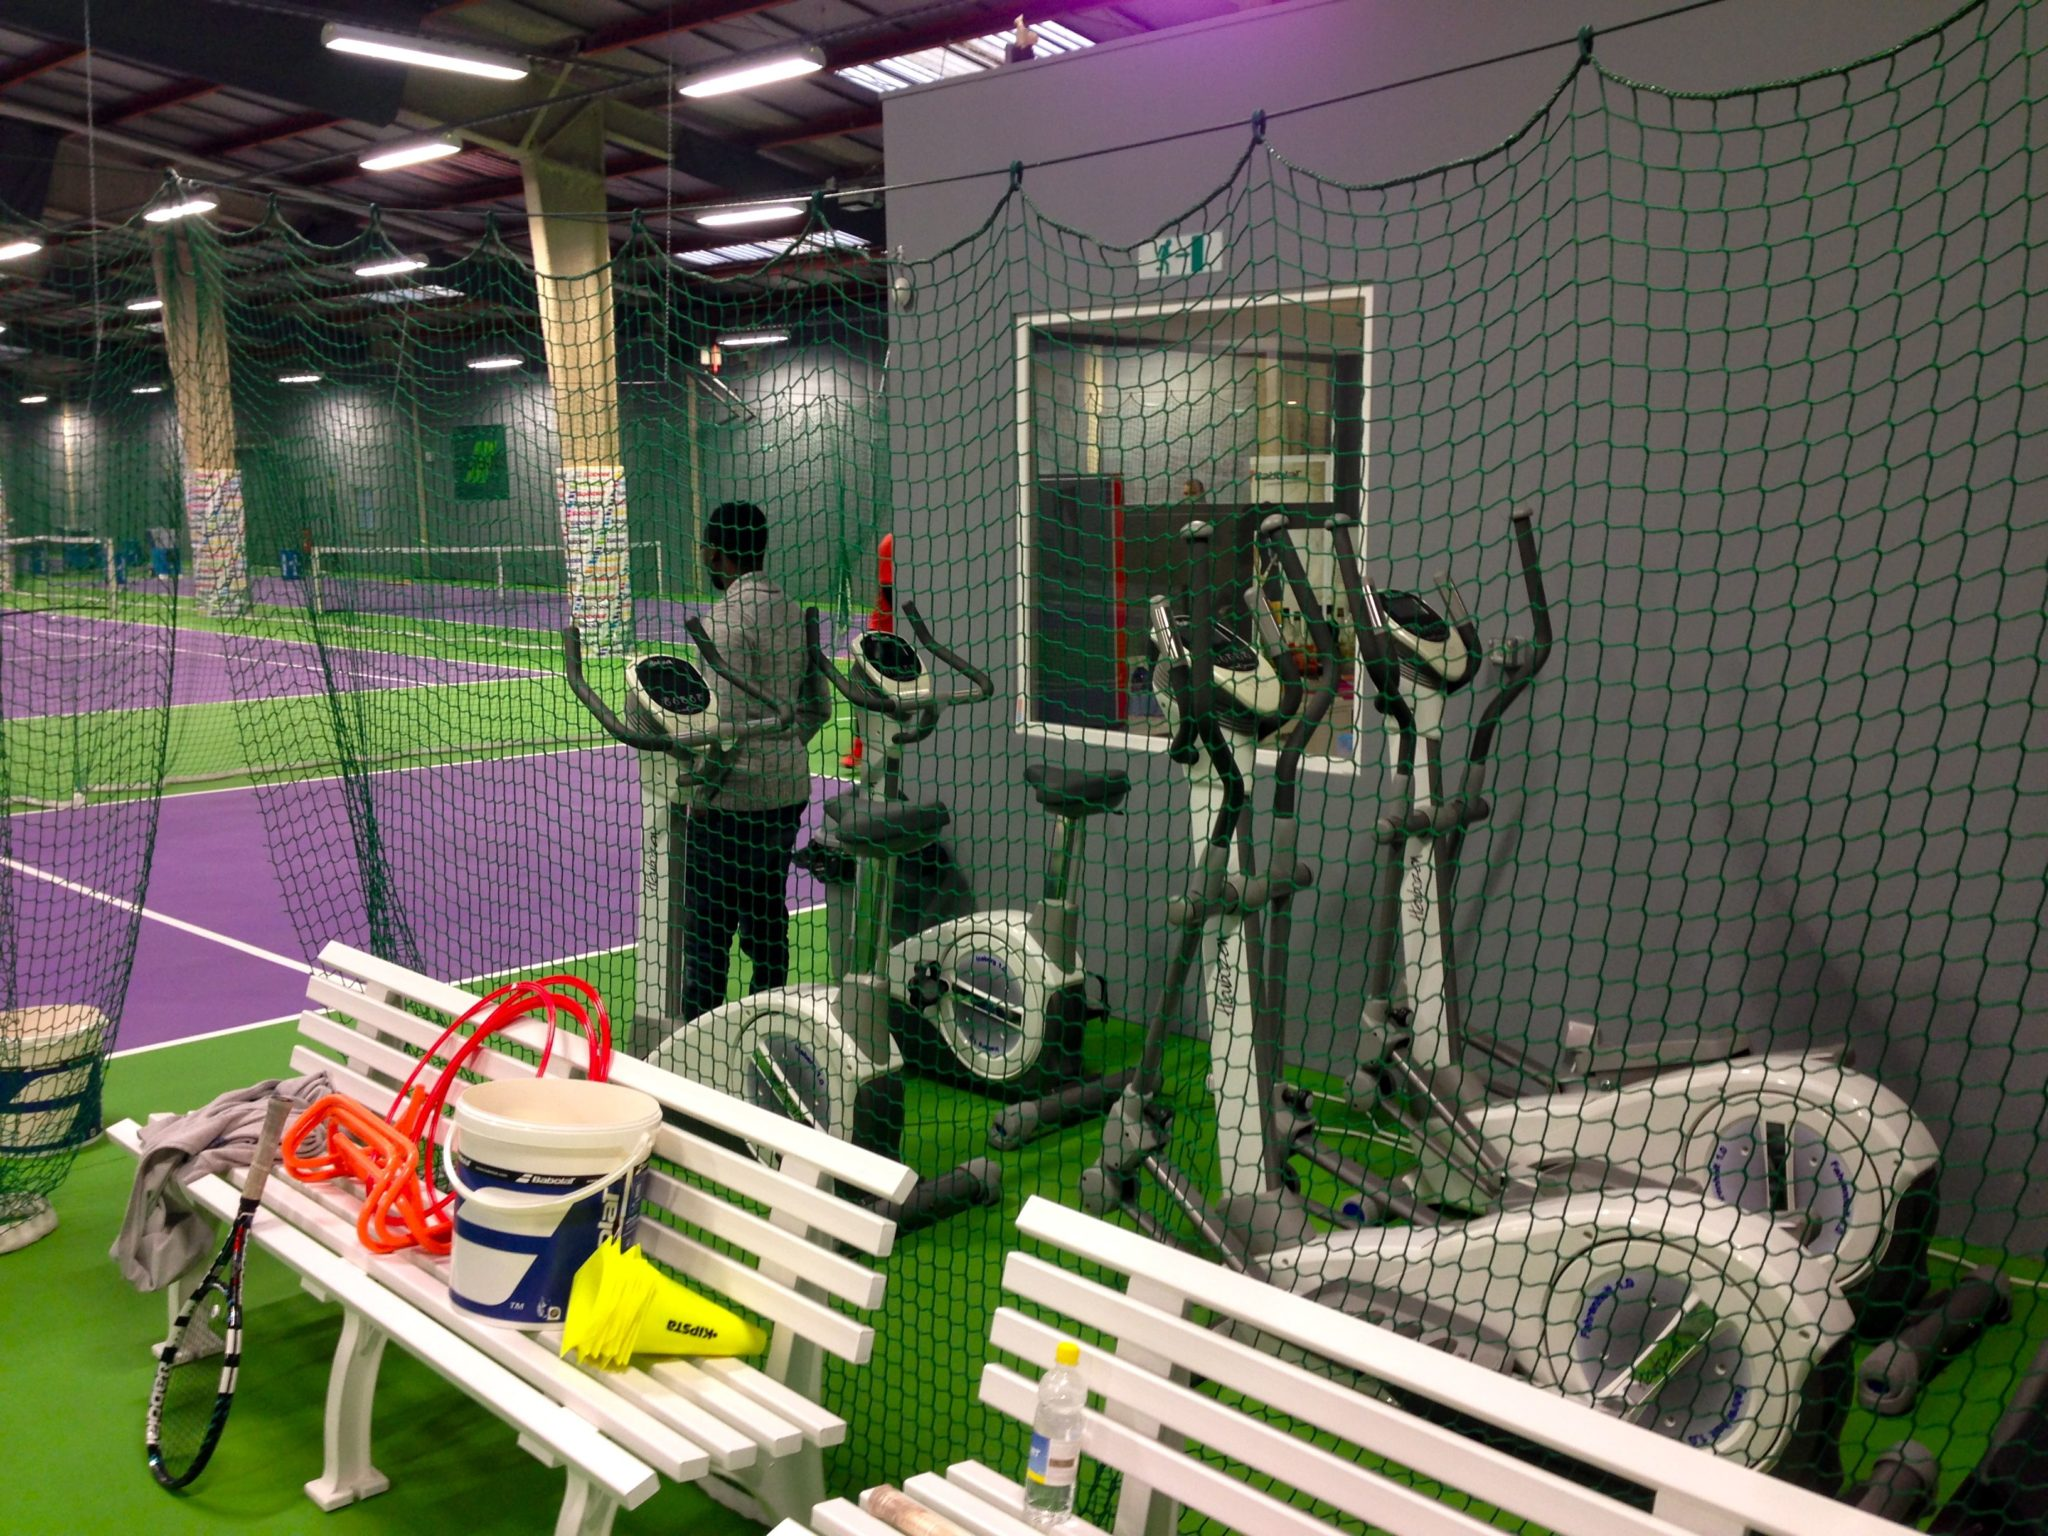 my tennis experience test03